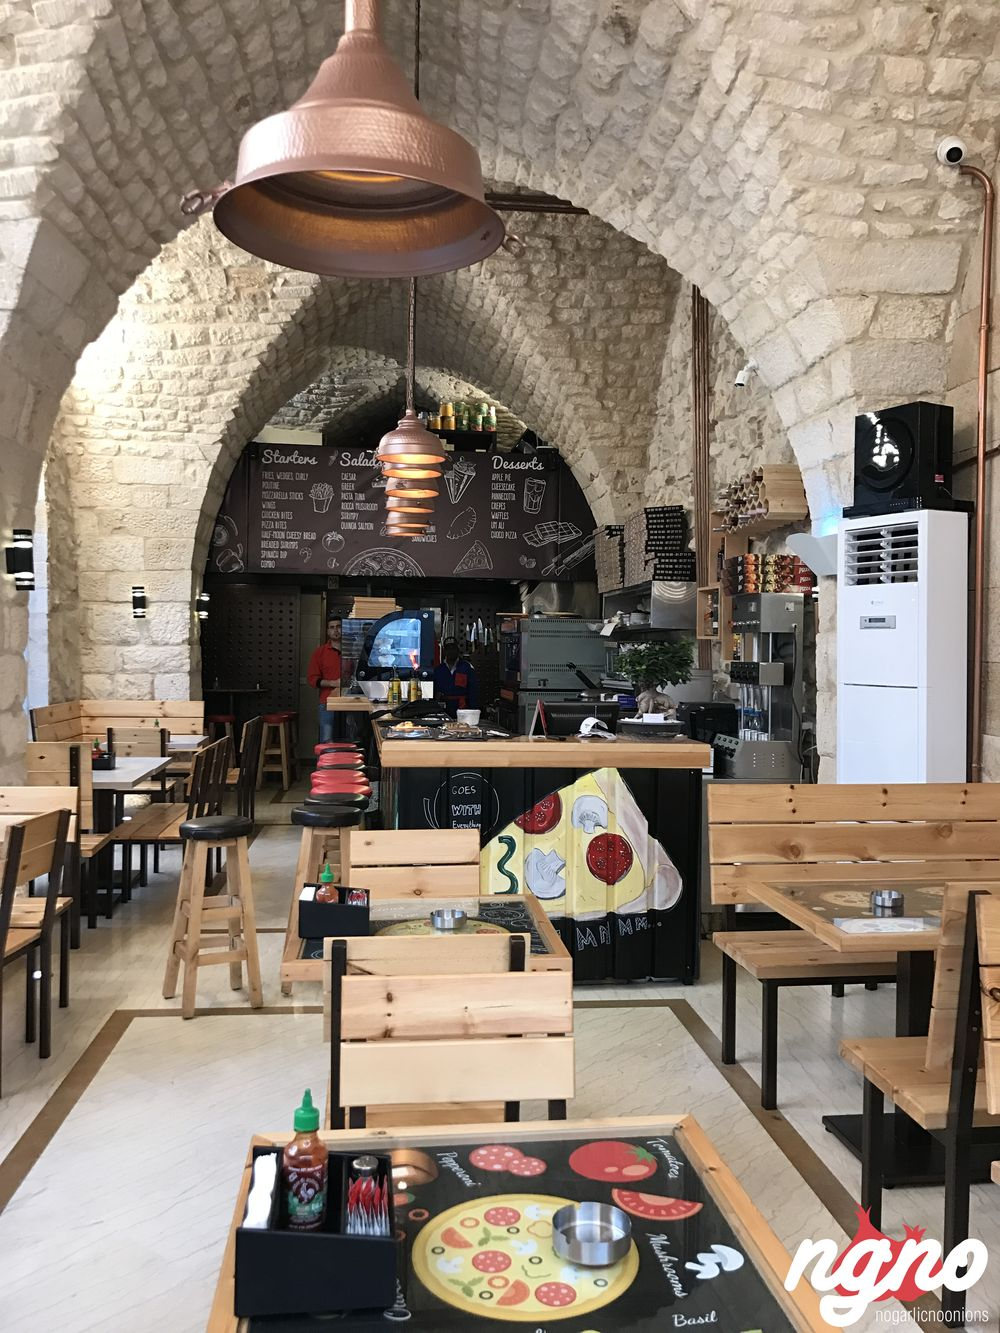 doughlicious-diner-jounieh502017-03-31-10-24-40